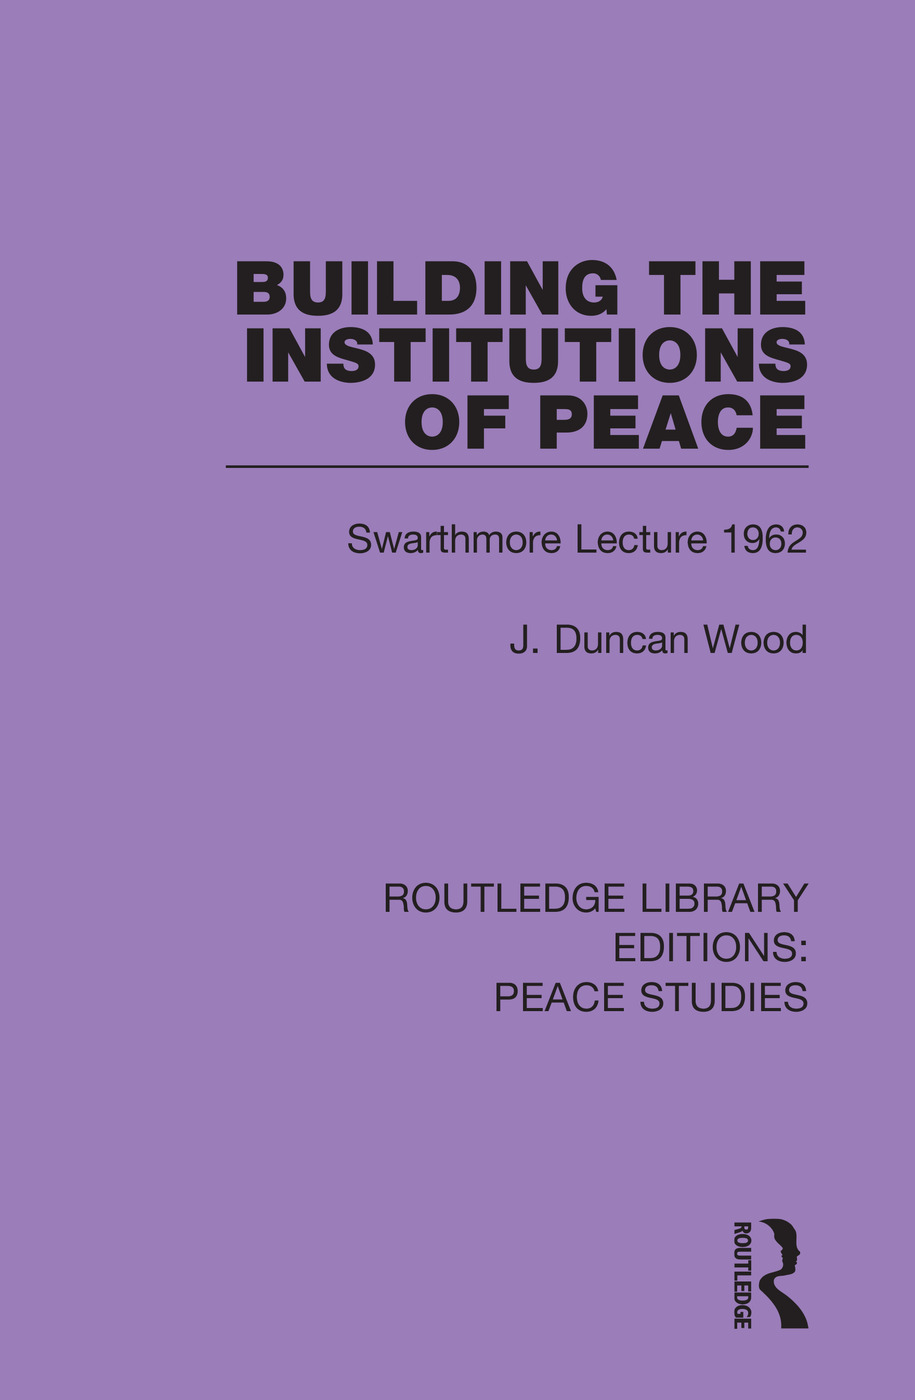 Building the Institutions of Peace: Swarthmore Lecture 1962 book cover